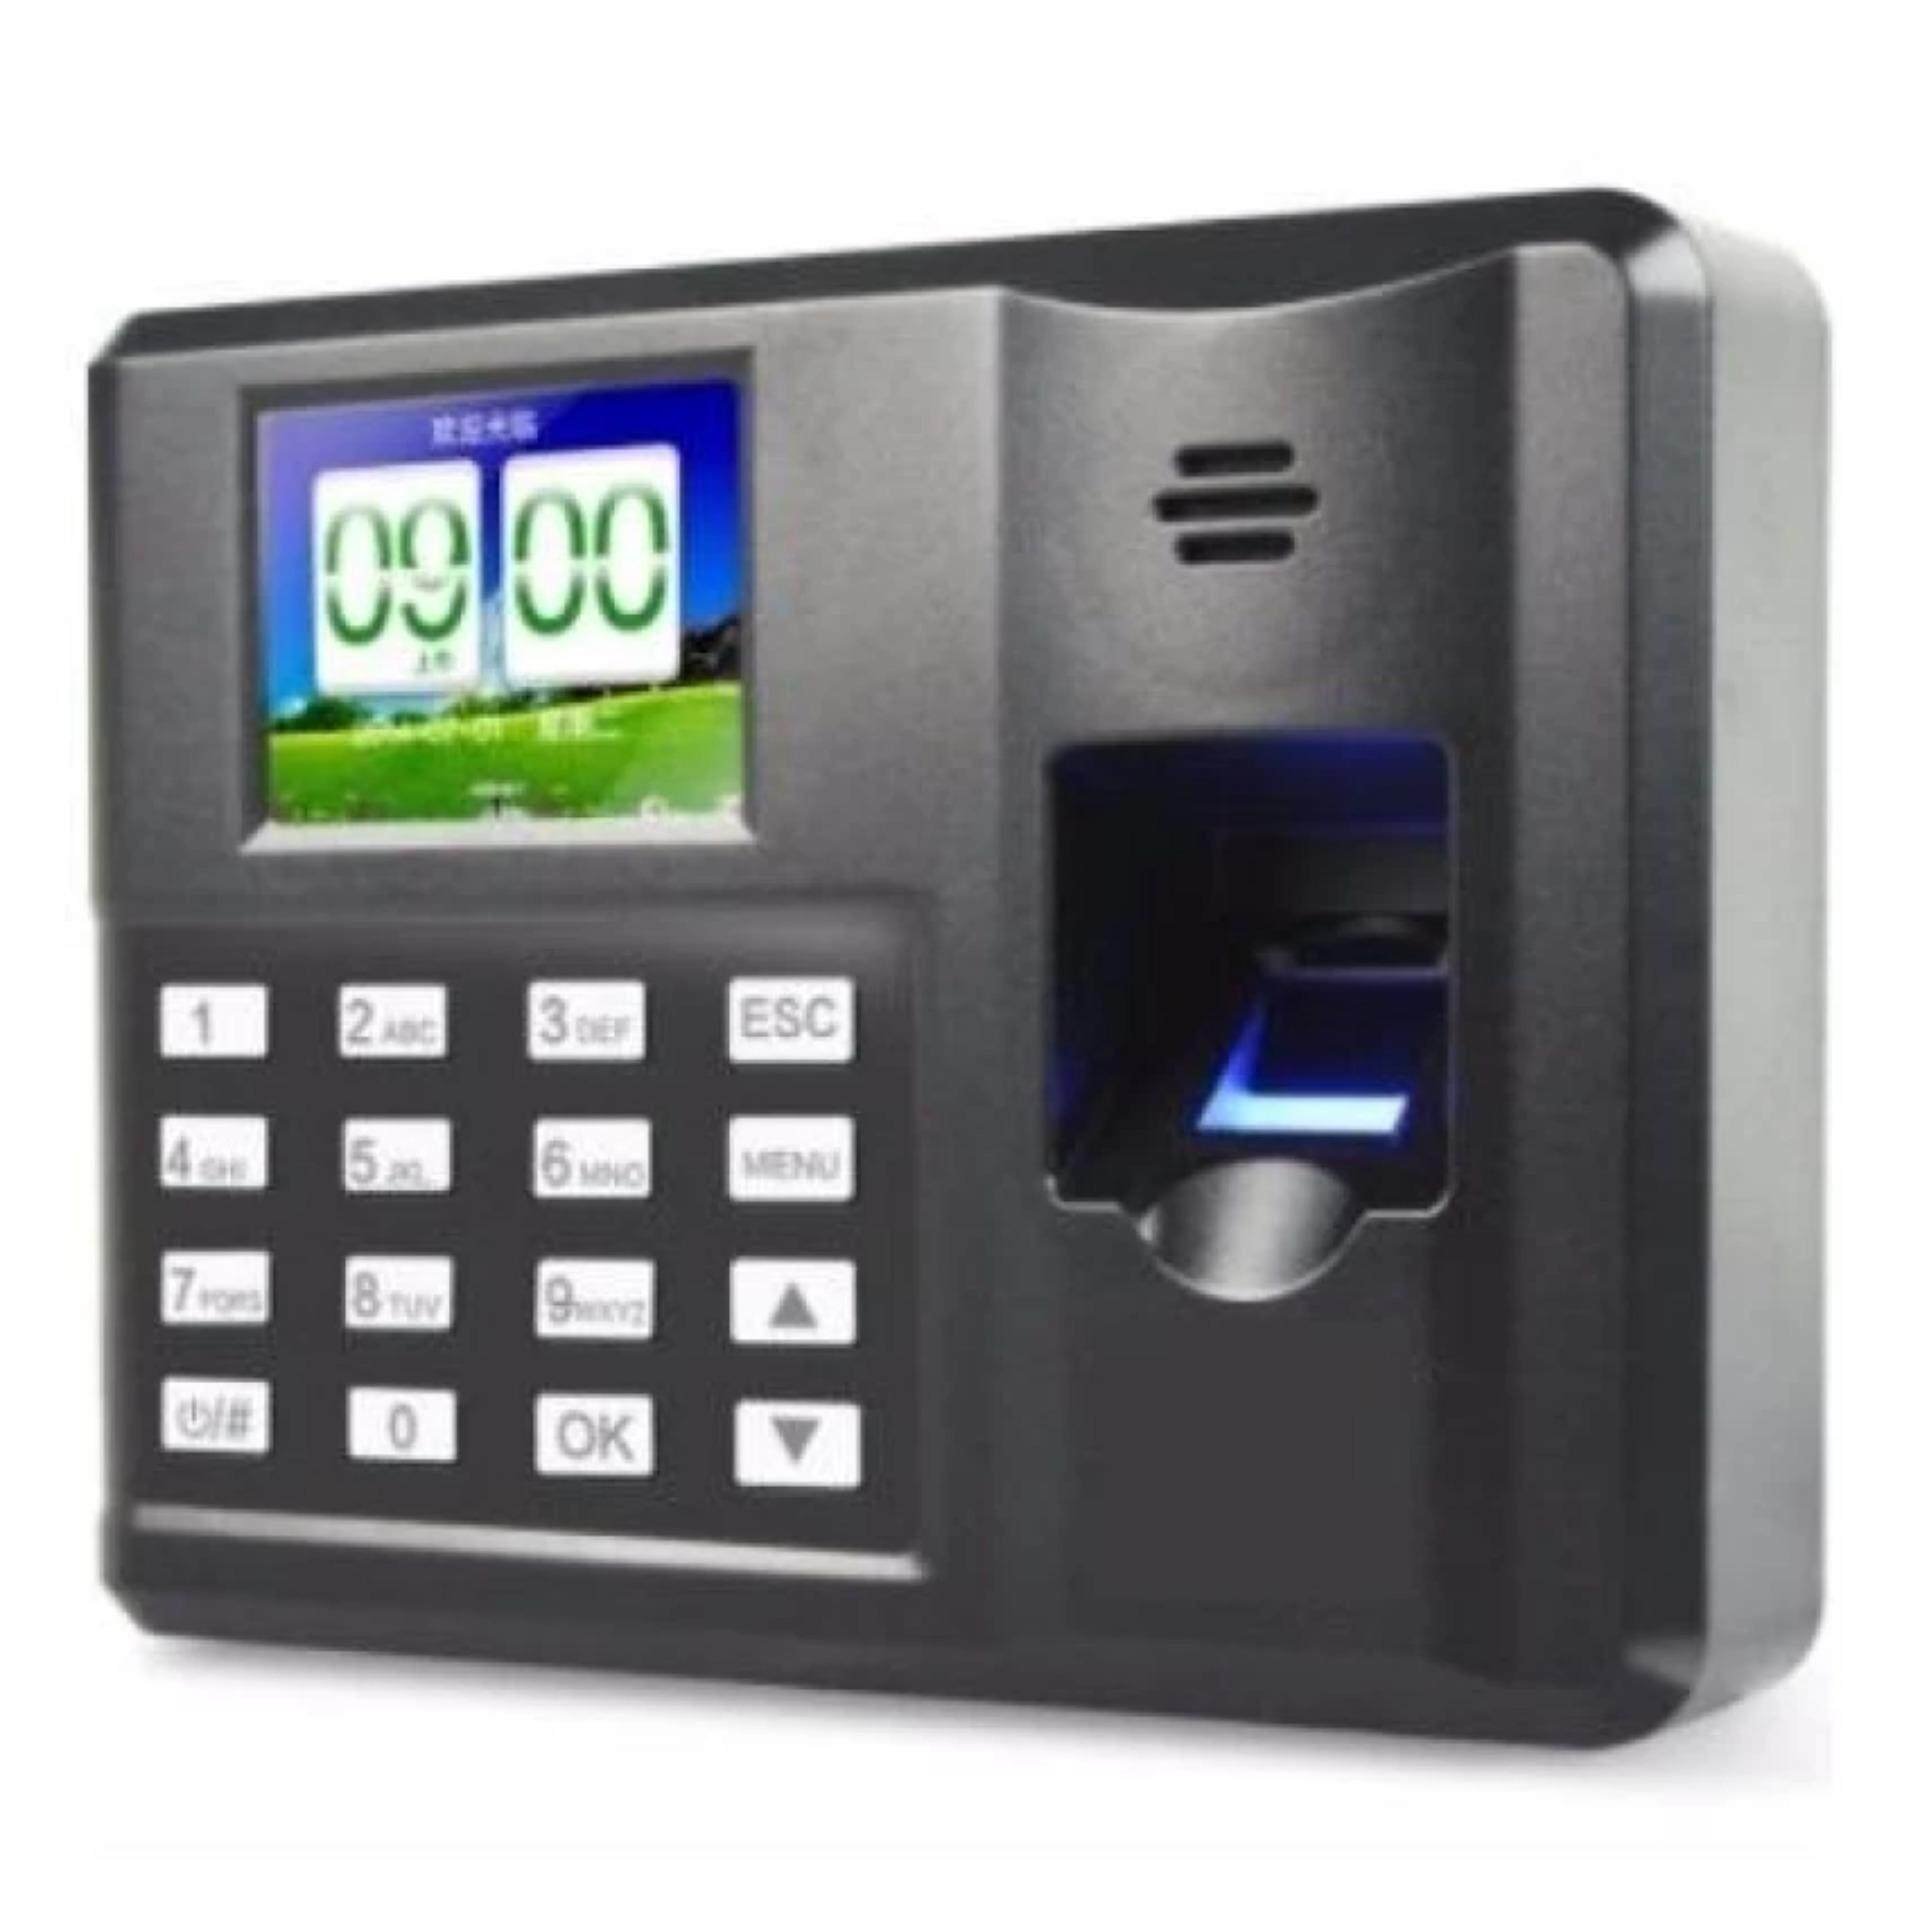 Biometric Fingerprint Time Attendance Clock Recorder Reader Machine ( 10 YEARS WARRANTY )